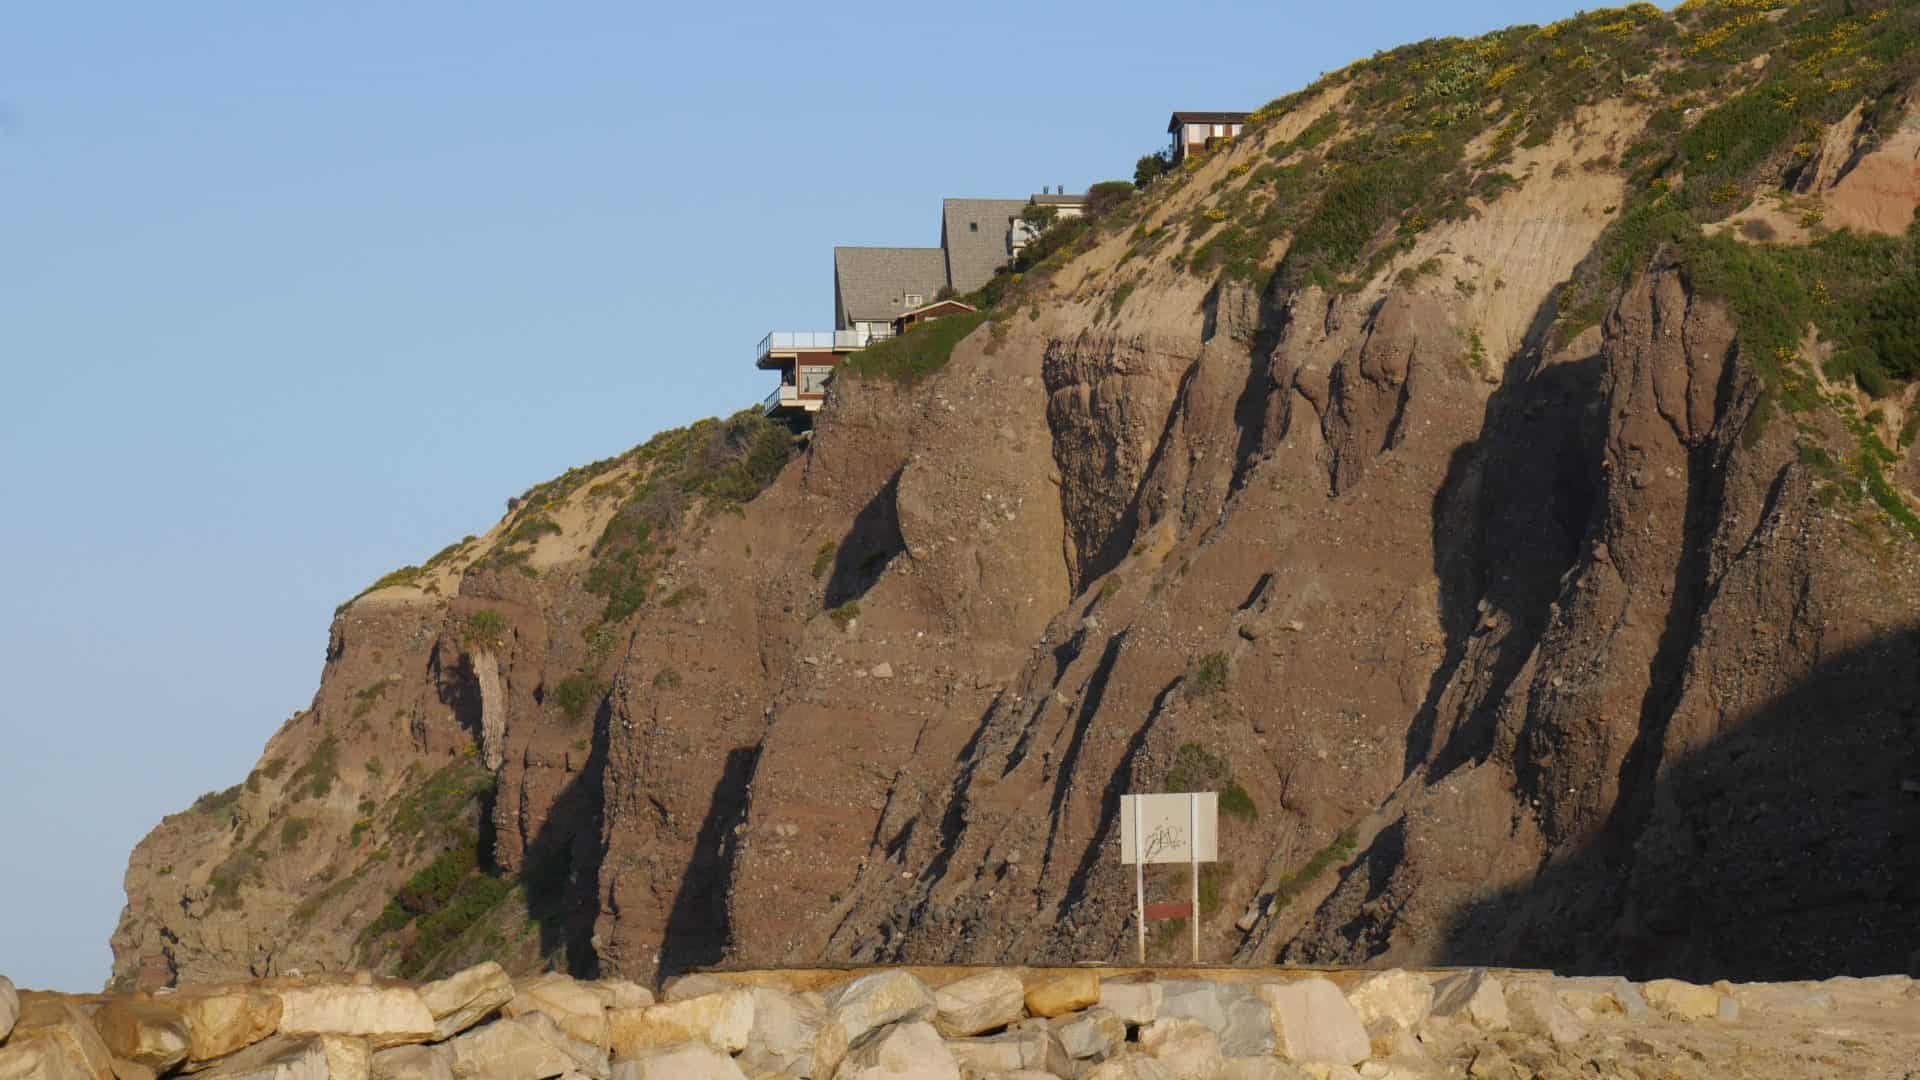 House on the cliff at Dana Point